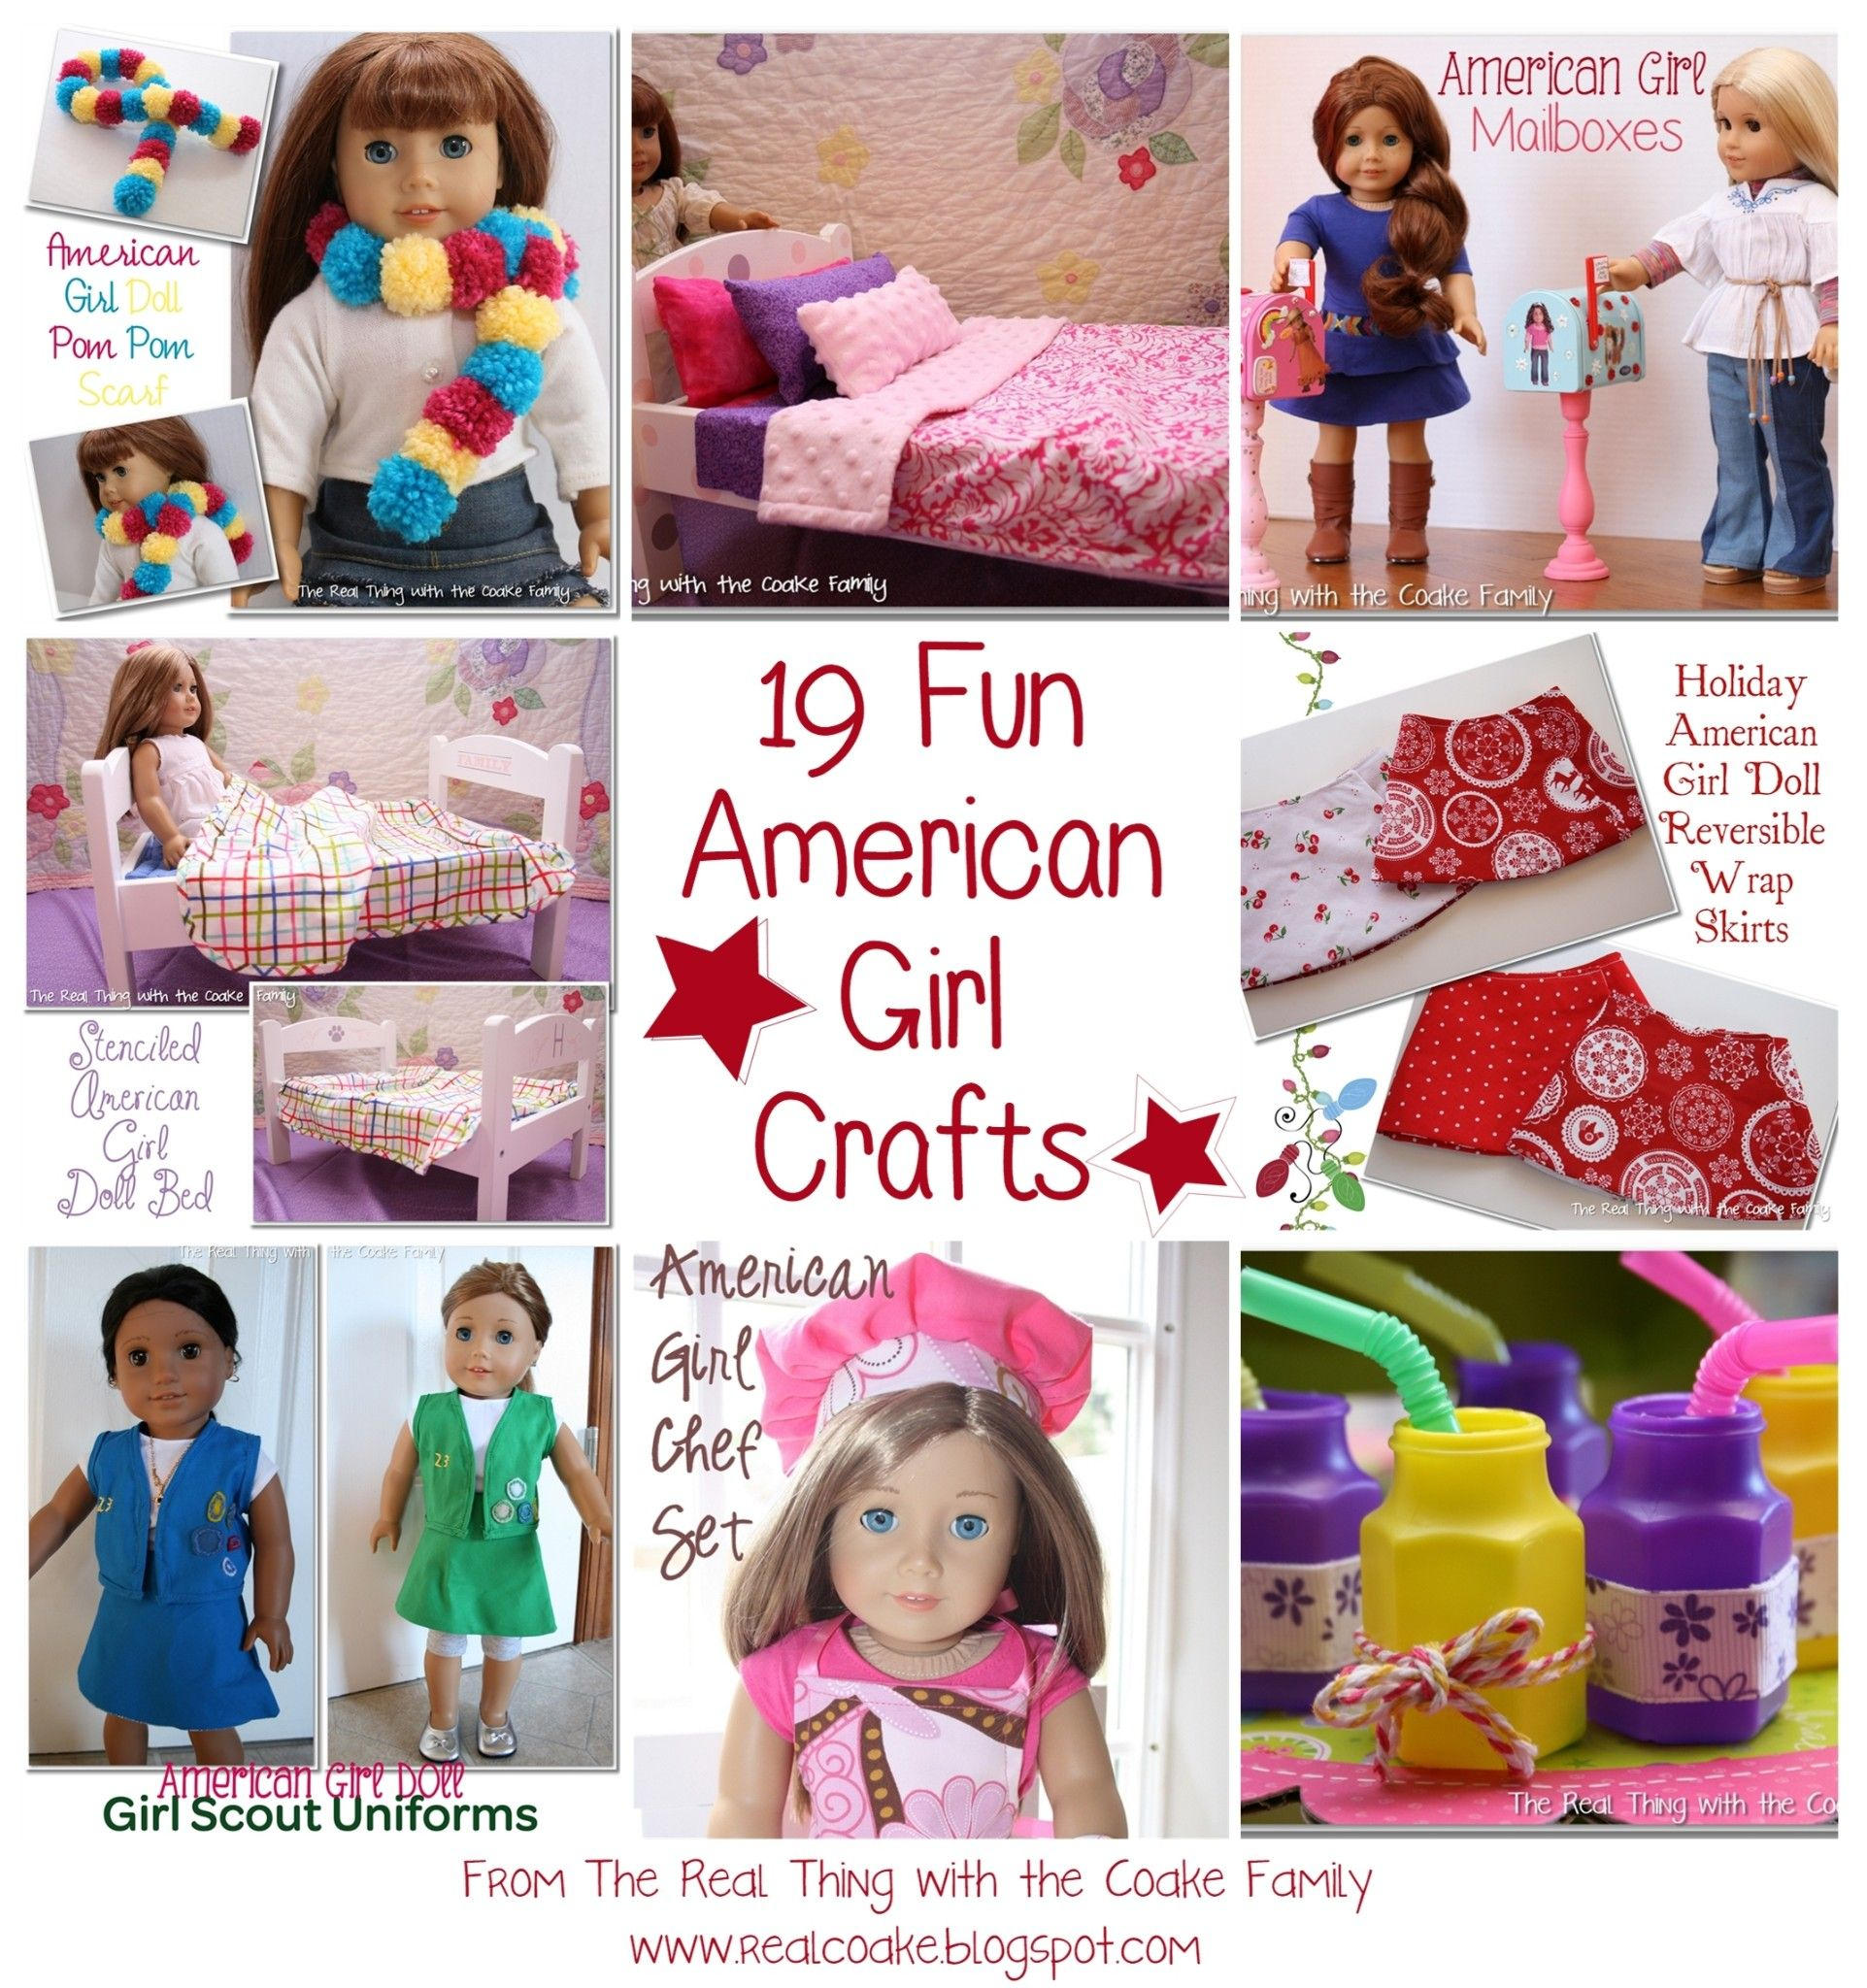 19 Fun American Girl Crafts...perfect fun for any American Girl Doll fan. Crafts, sewing and party ideas that are easy crafts and cute projects